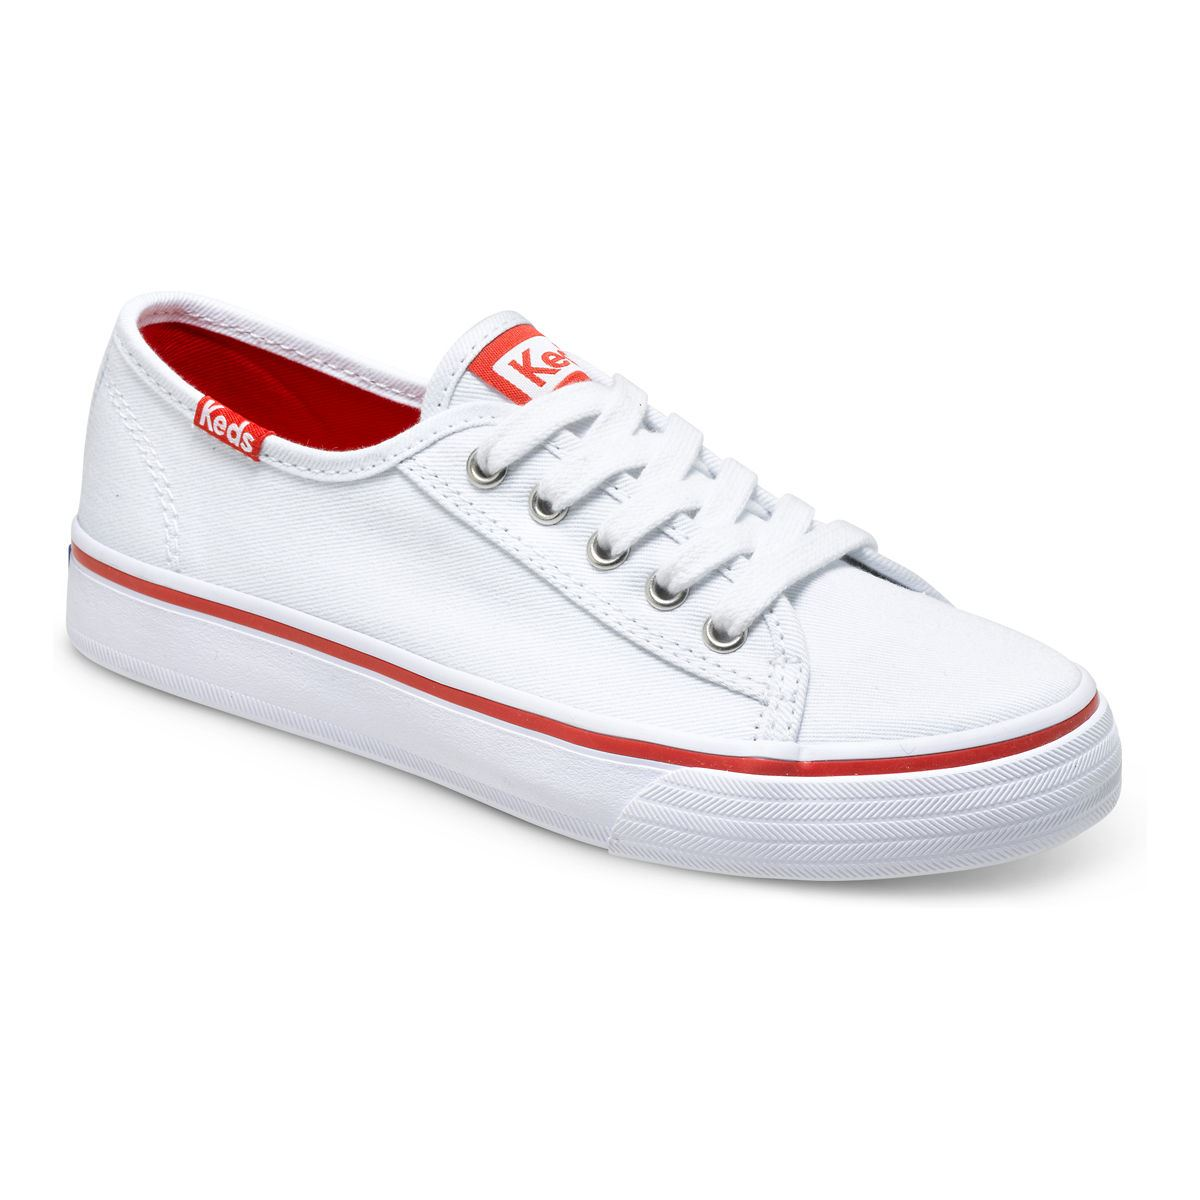 keds double up sneakers white